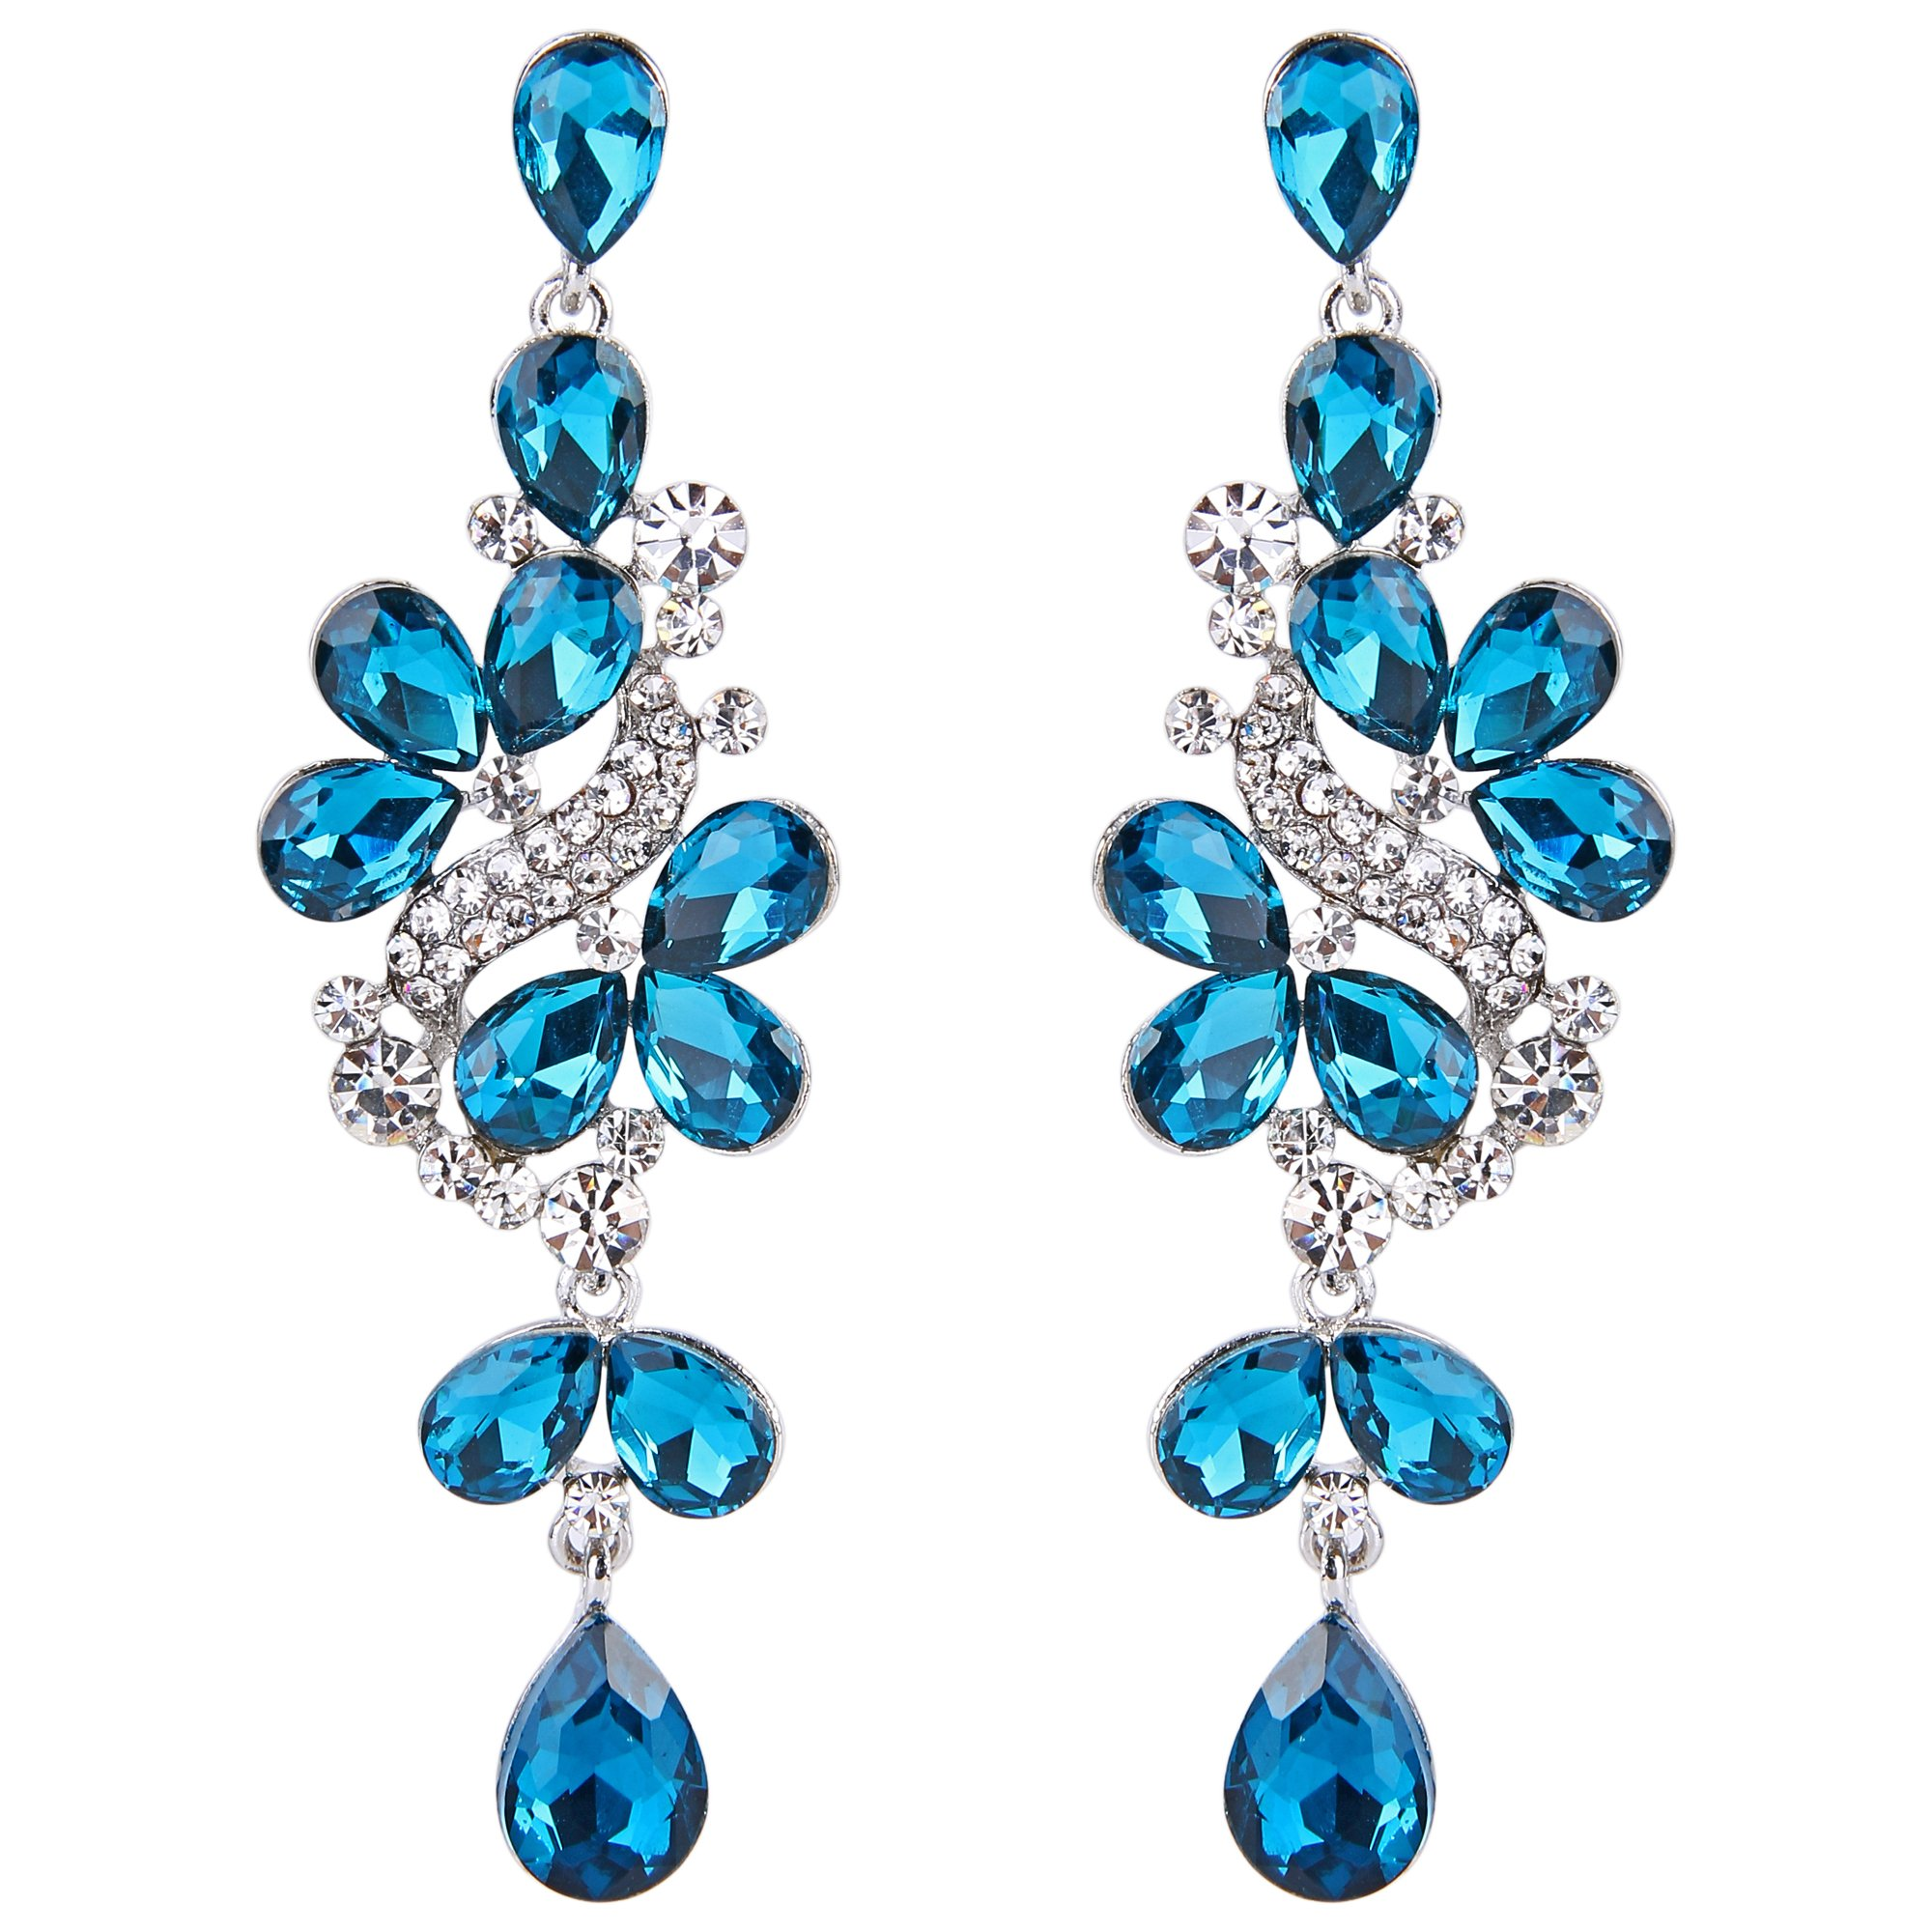 BriLove Women's Victorian Style Crystal Dangle Earrings Wedding Bridal with Cluster Teardrop Leaves Blue Topaz Color Silver-Tone